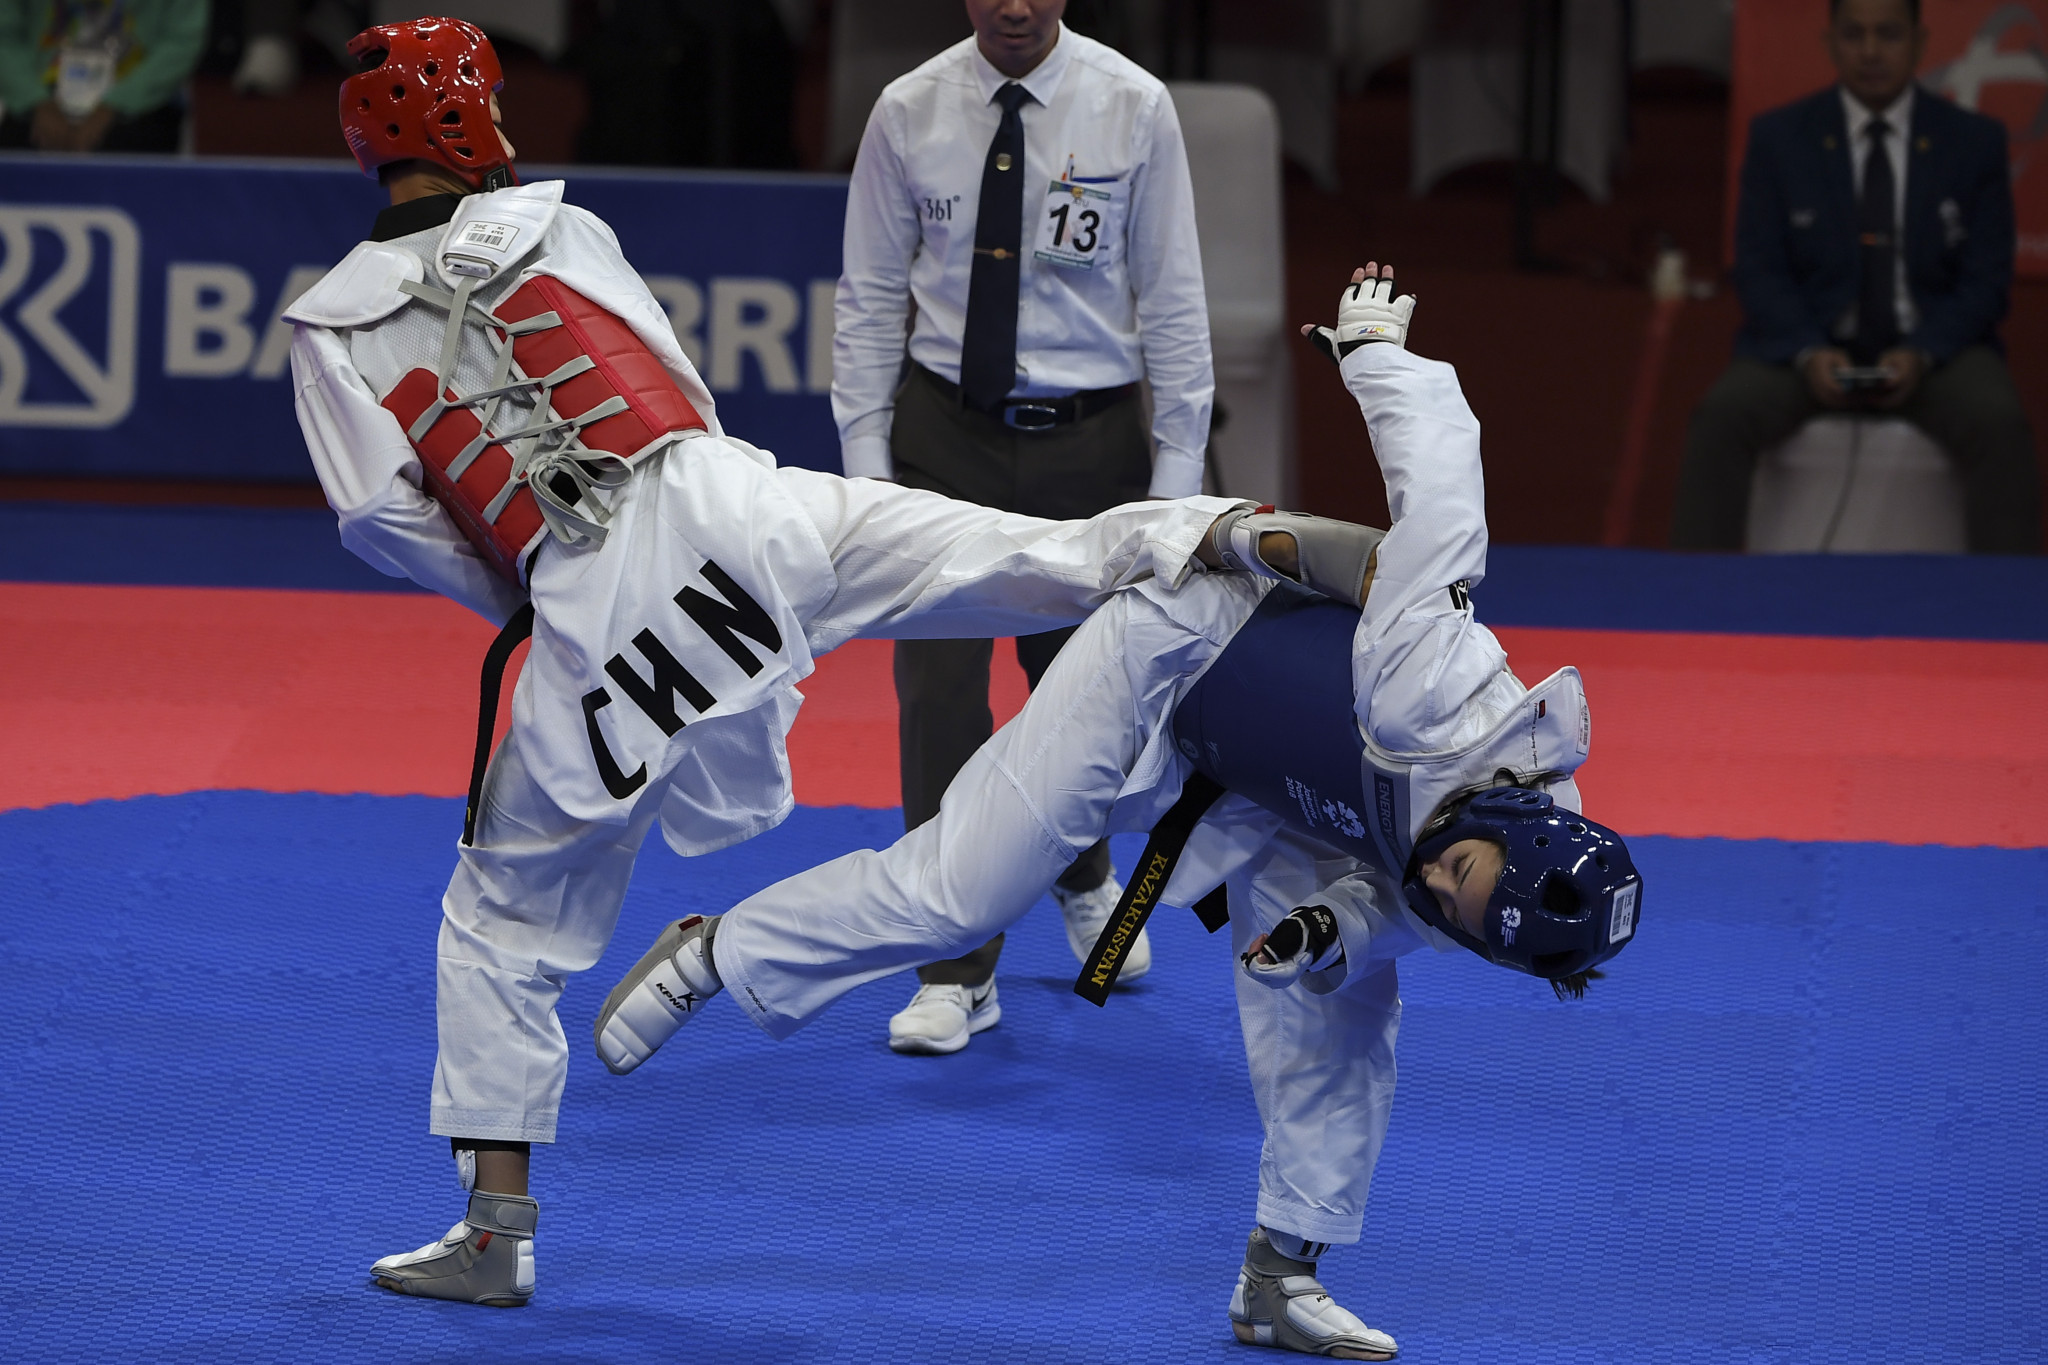 Chinese Taekwondo and Karate Association President Guan discusses Tokyo 2020 preparations